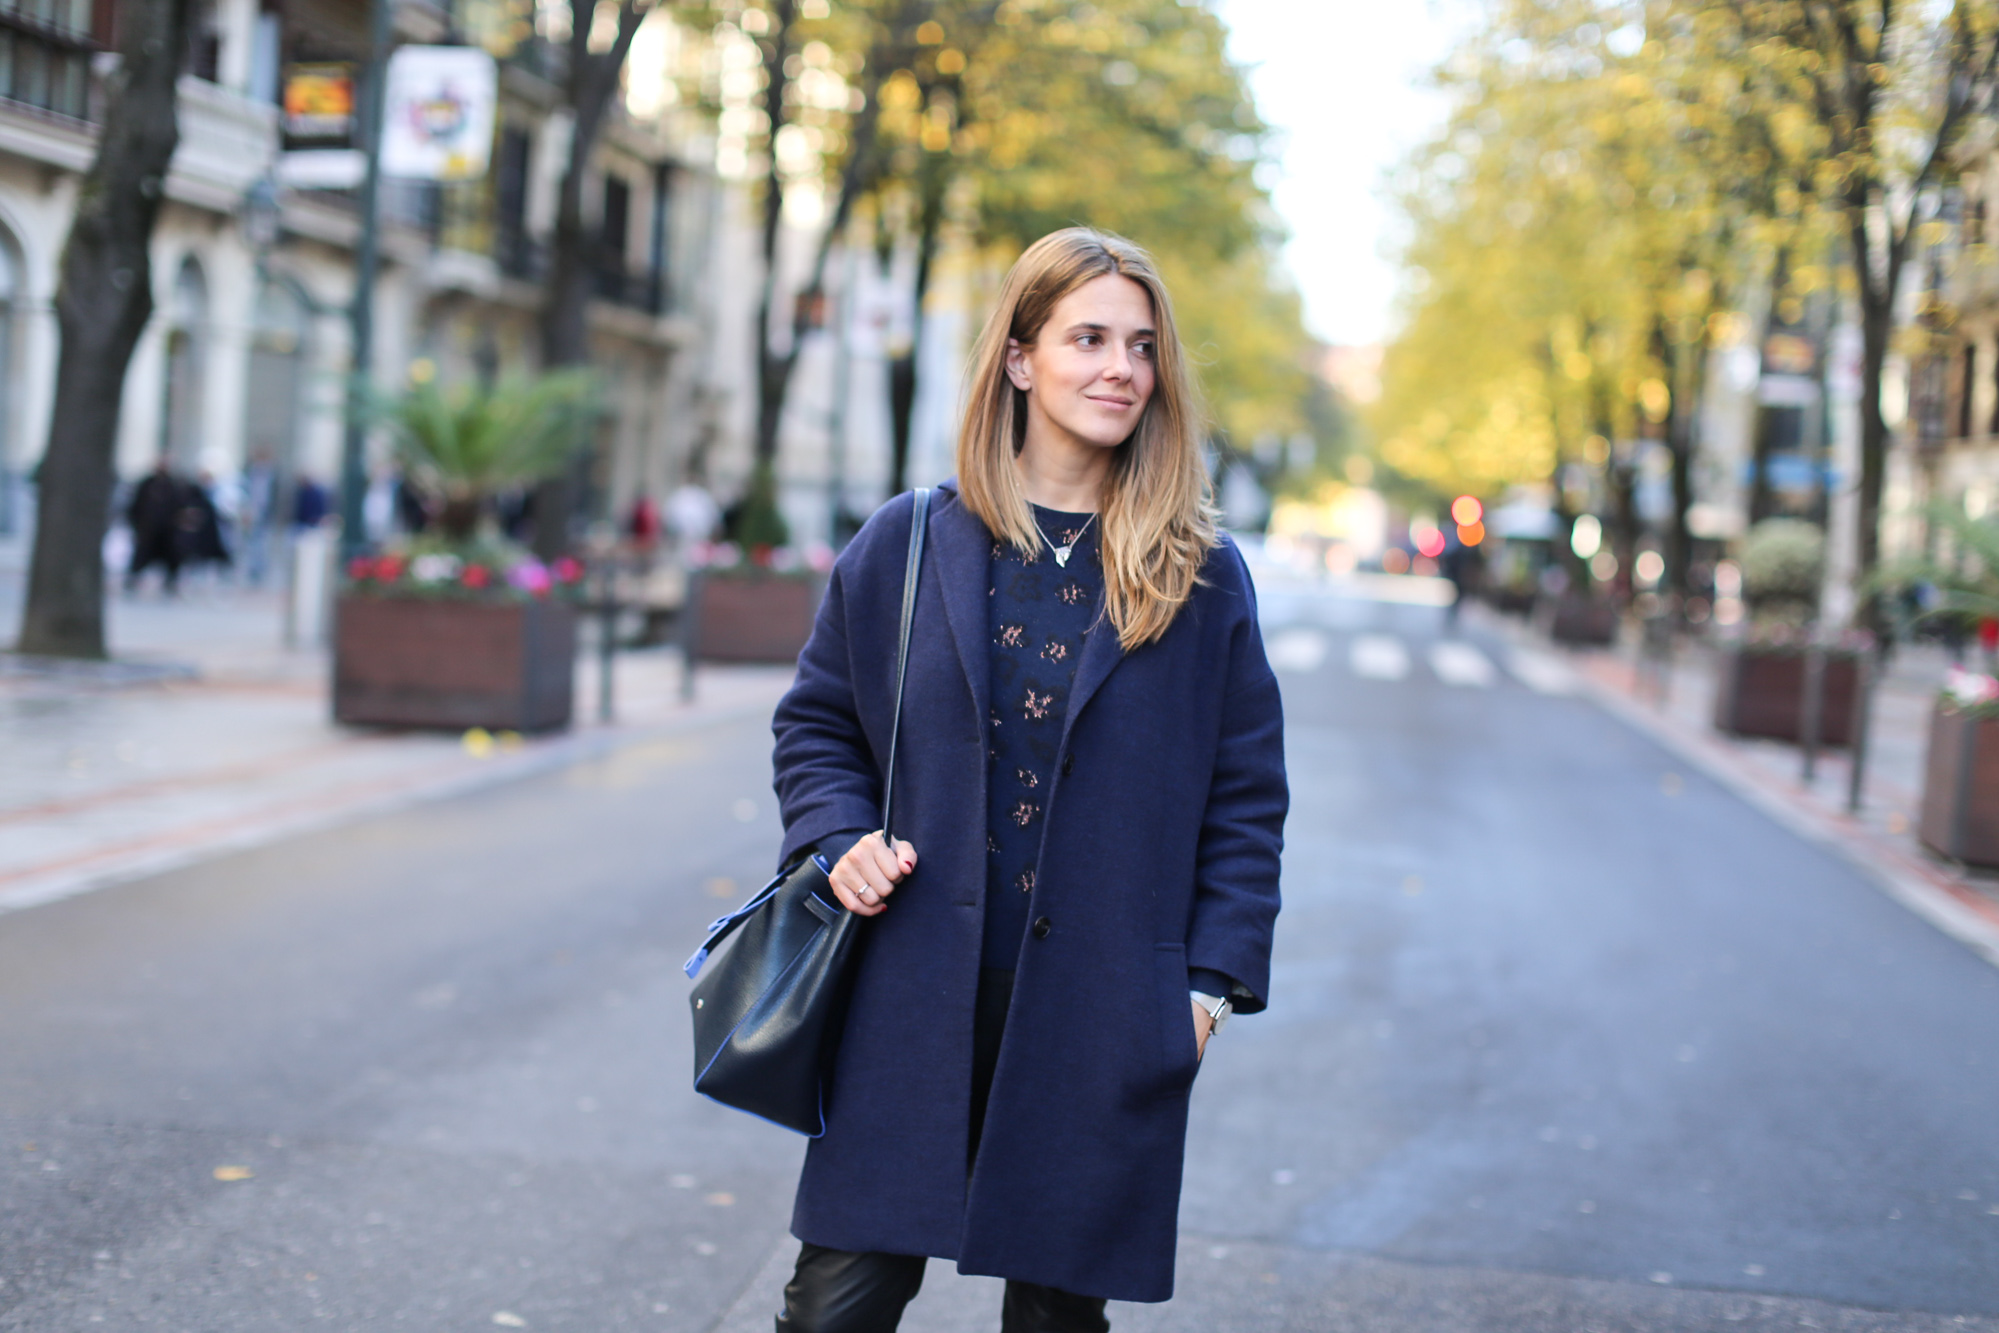 Clochet_streetstyle_fashionblogger_bilbao_masscobCoulsonCoat_trimmerbilbao_adidassuperstar-4